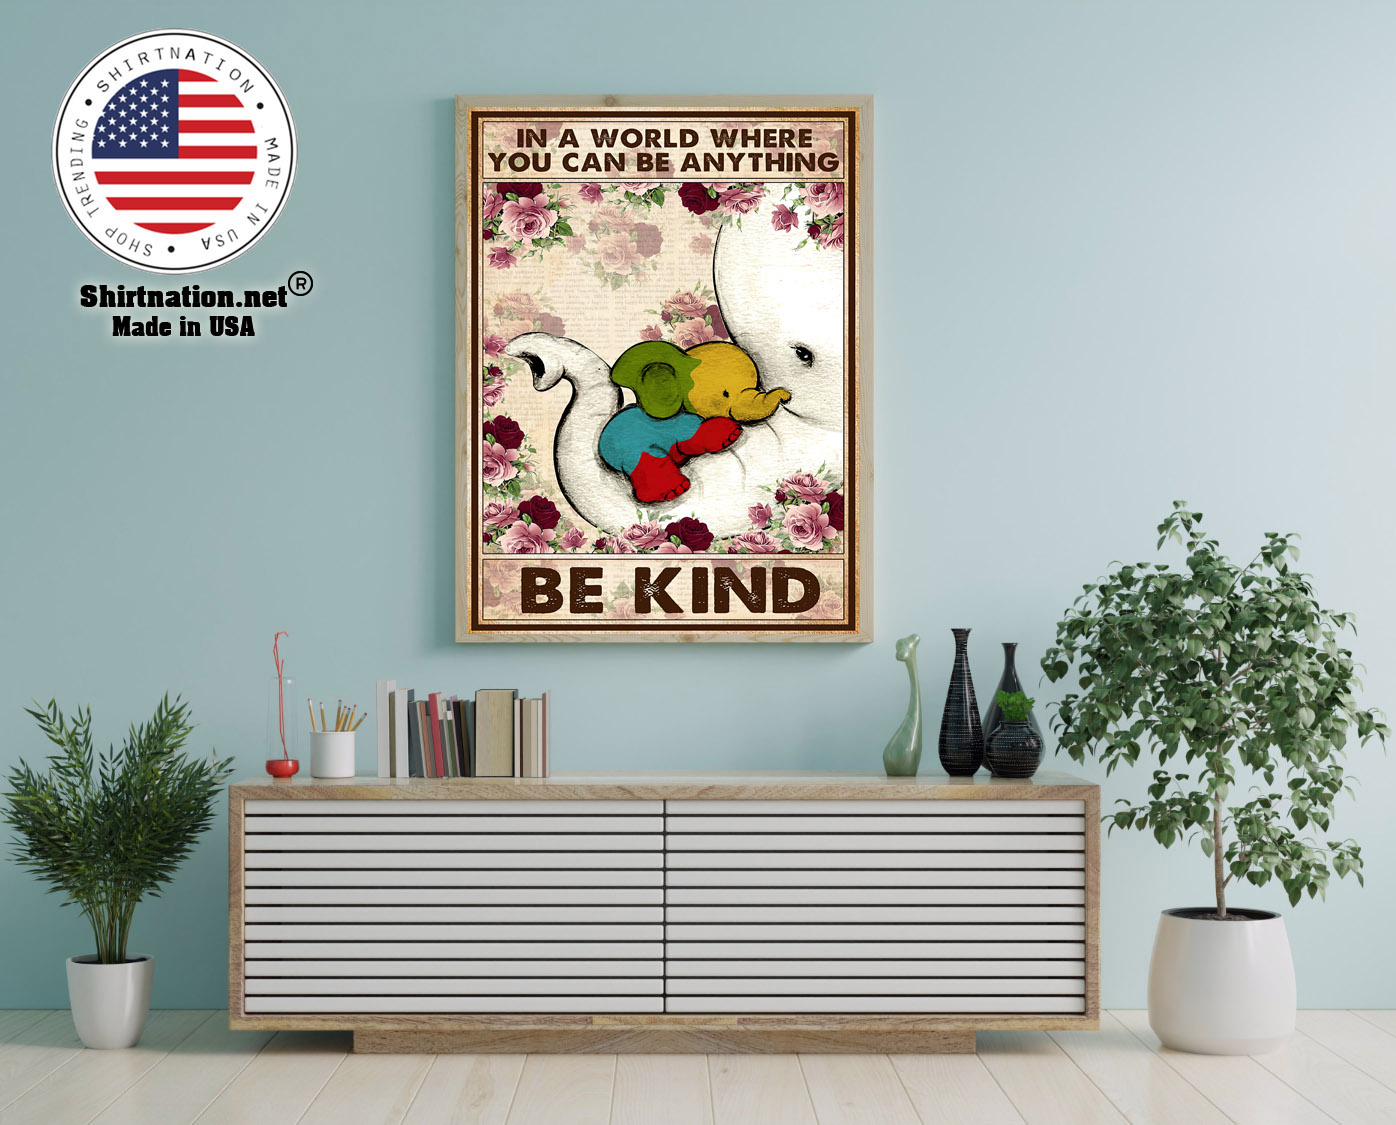 Autism Elephant In a world where you can be anything be kind poster 12